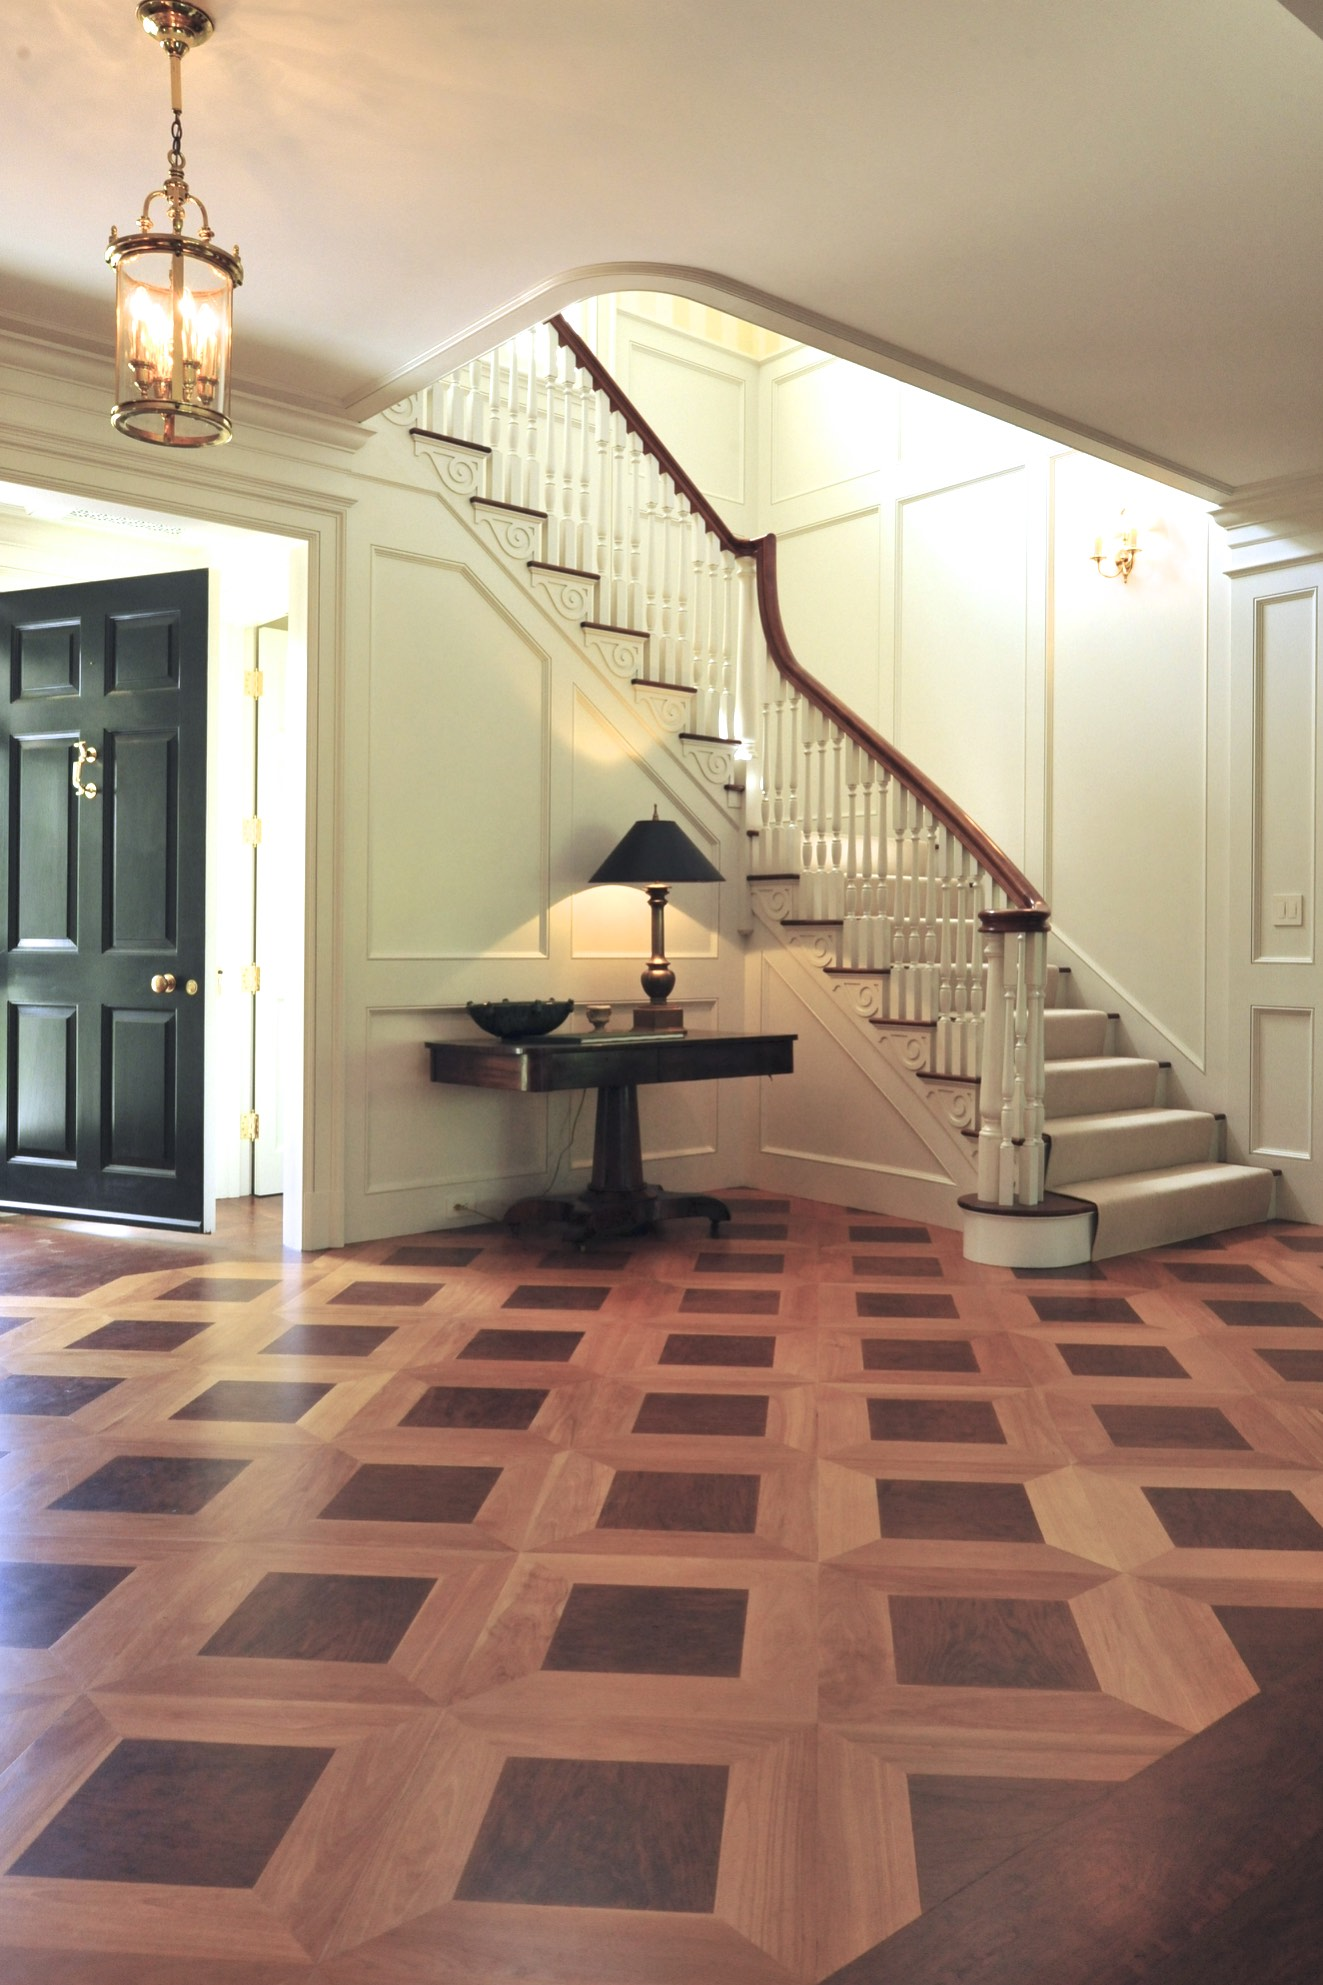 the floors were designed to replicate those in Thomas Jefferson's Parlor in monticello - Photo: cheryle St Onge